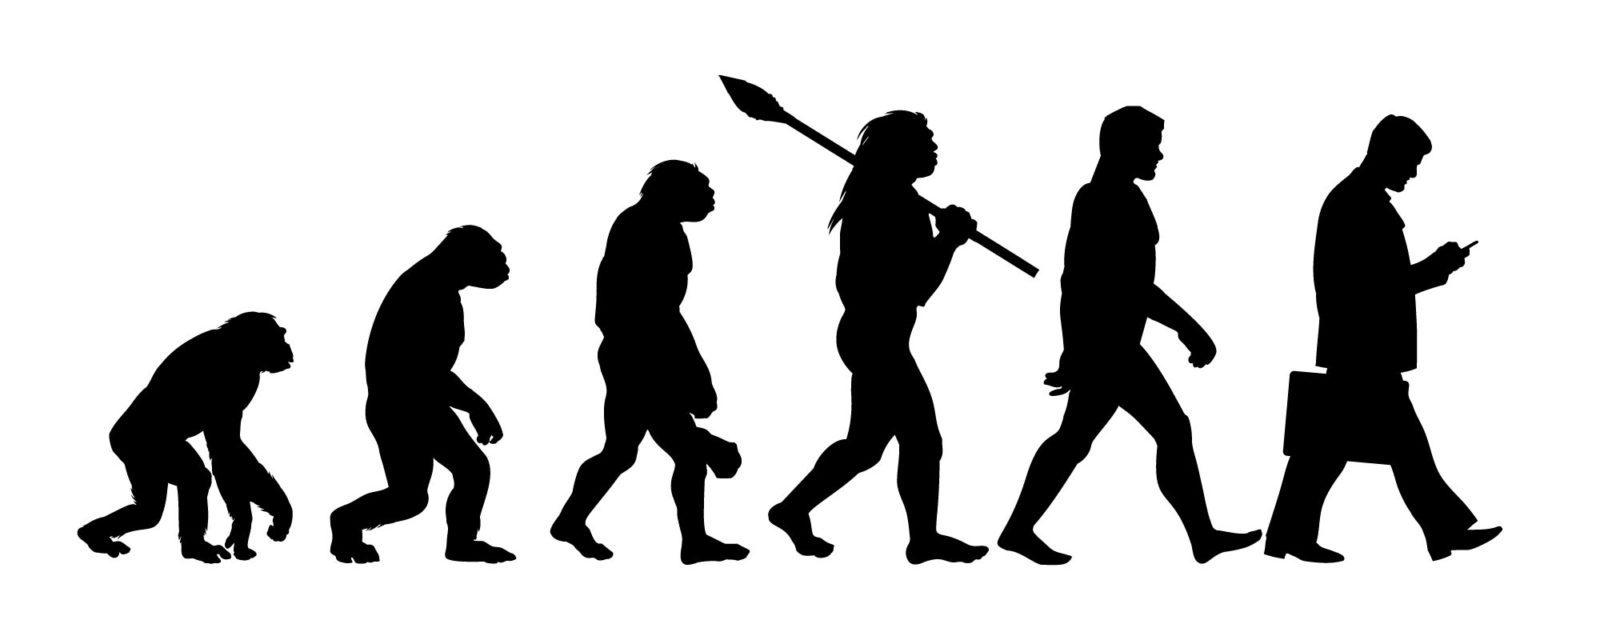 evolution-Converted-e1592424718980.jpg